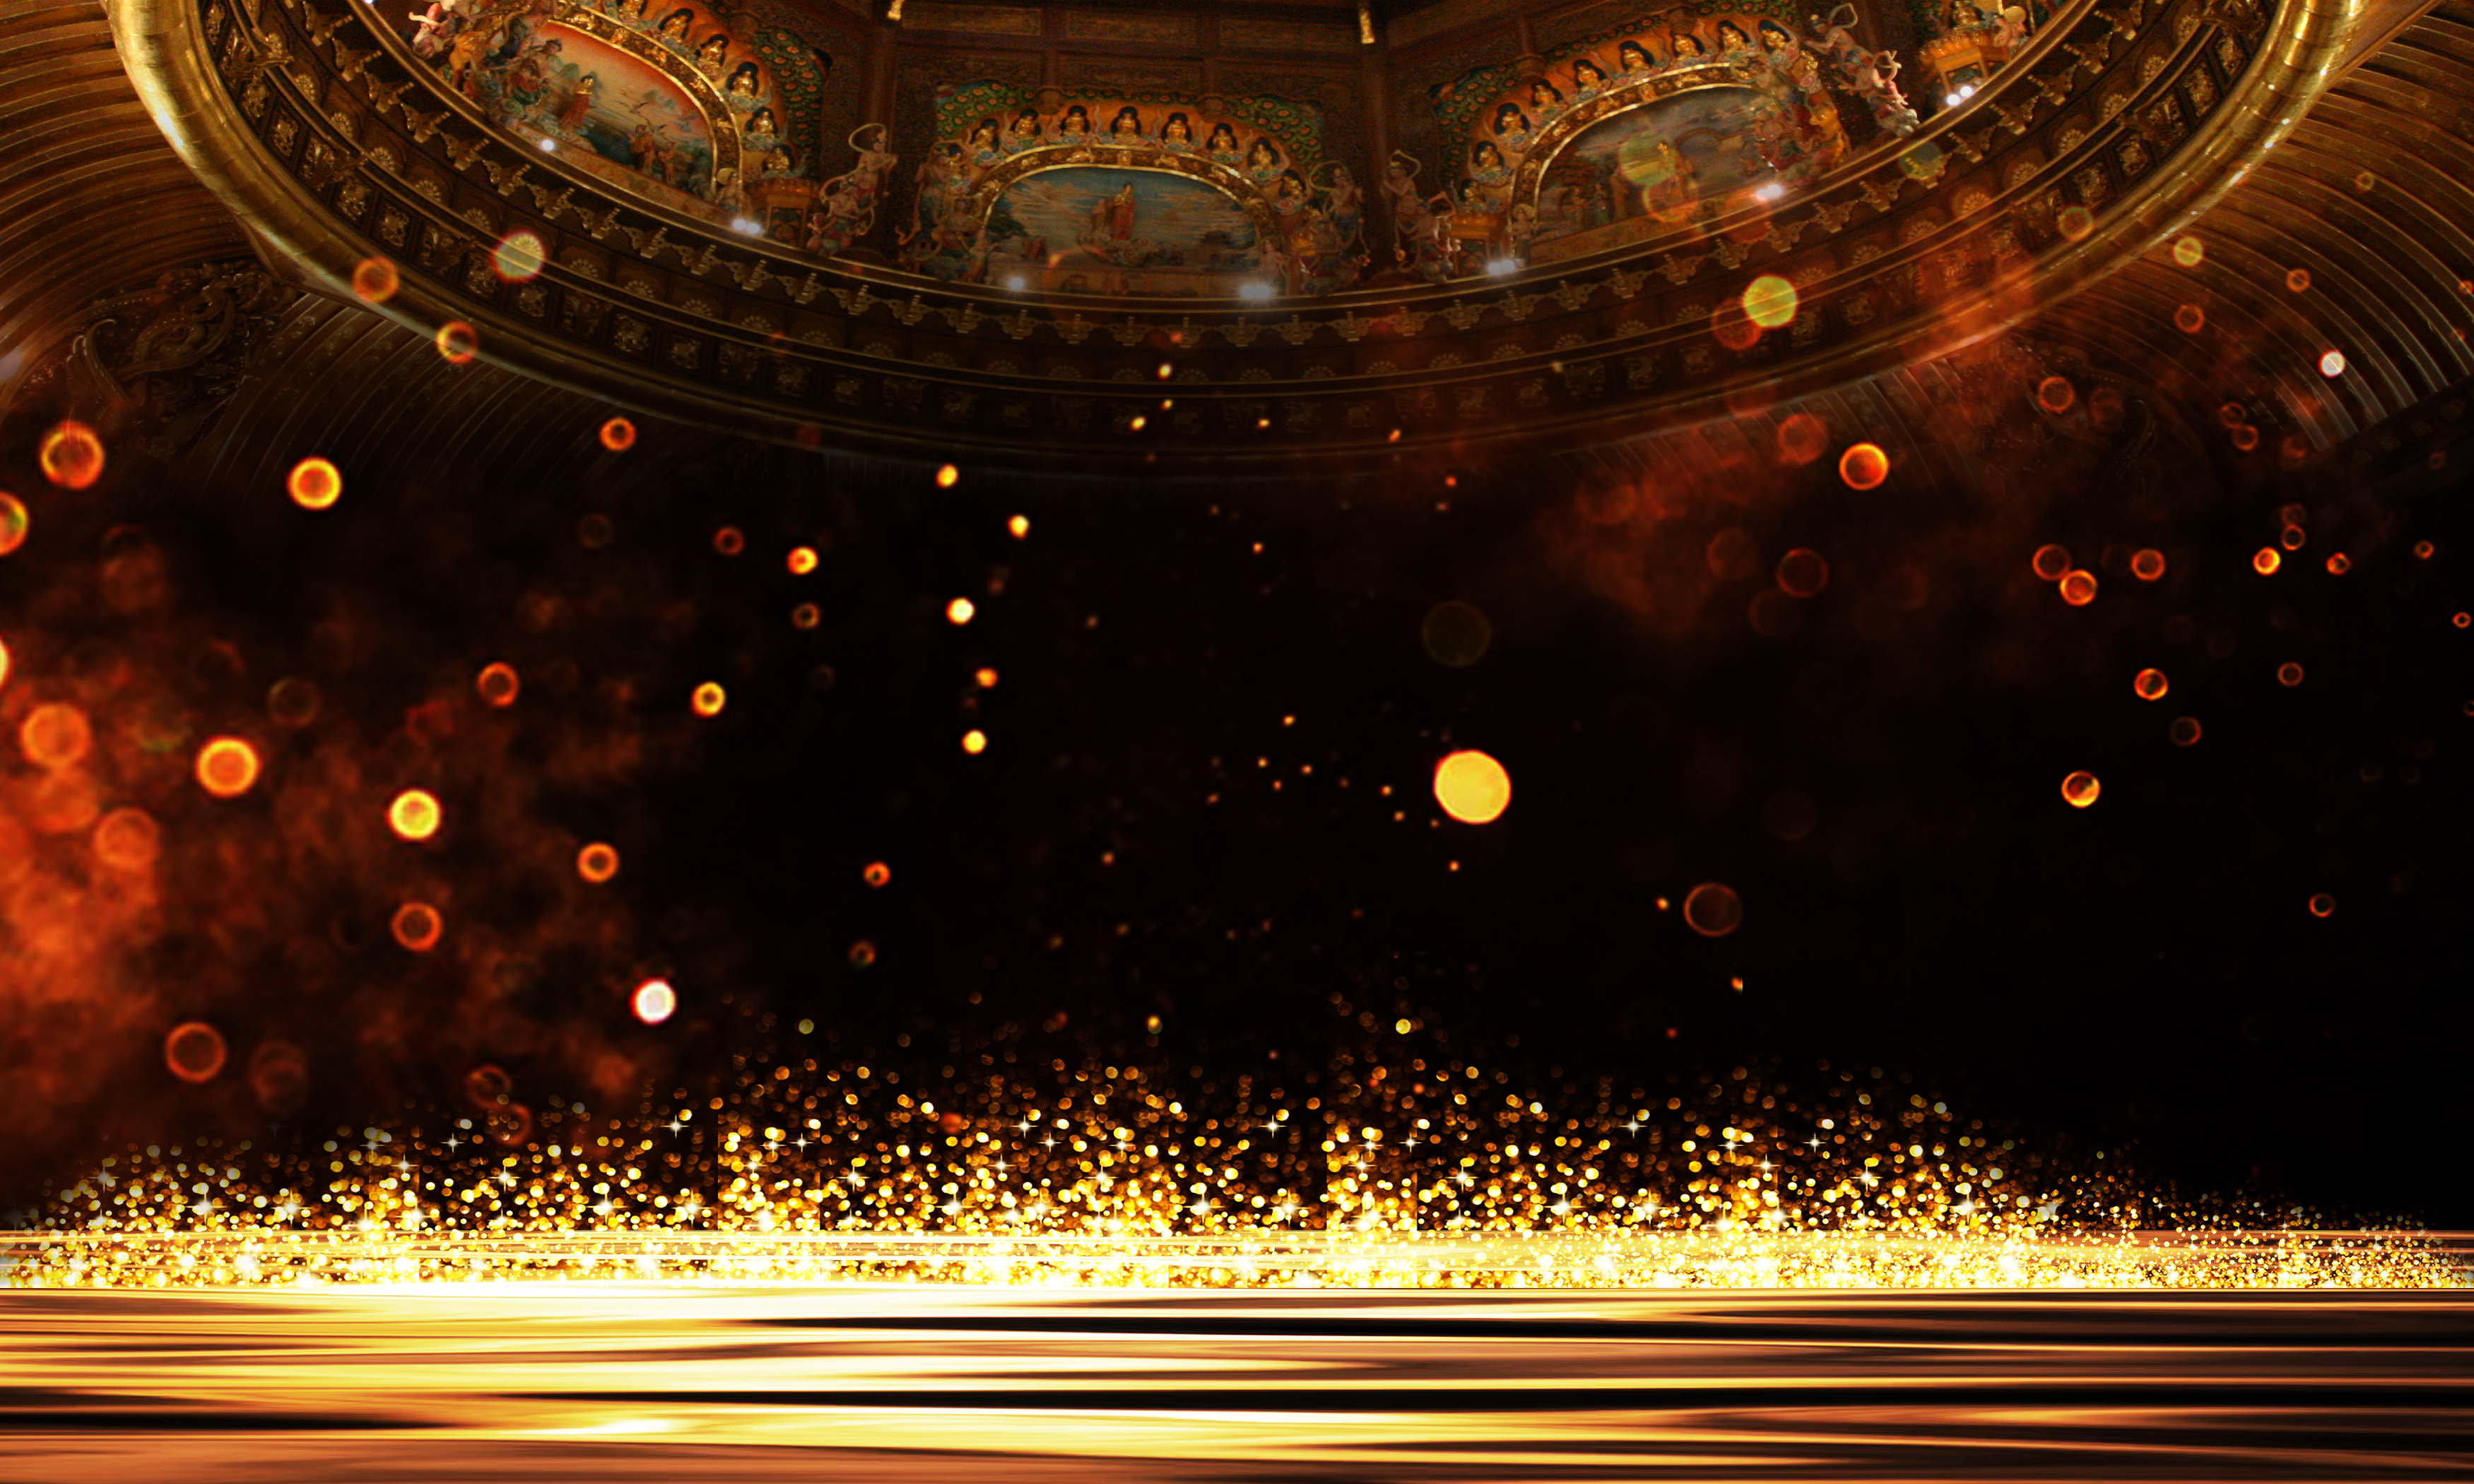 Golden Atmosphere Bright Show Board Poster Background